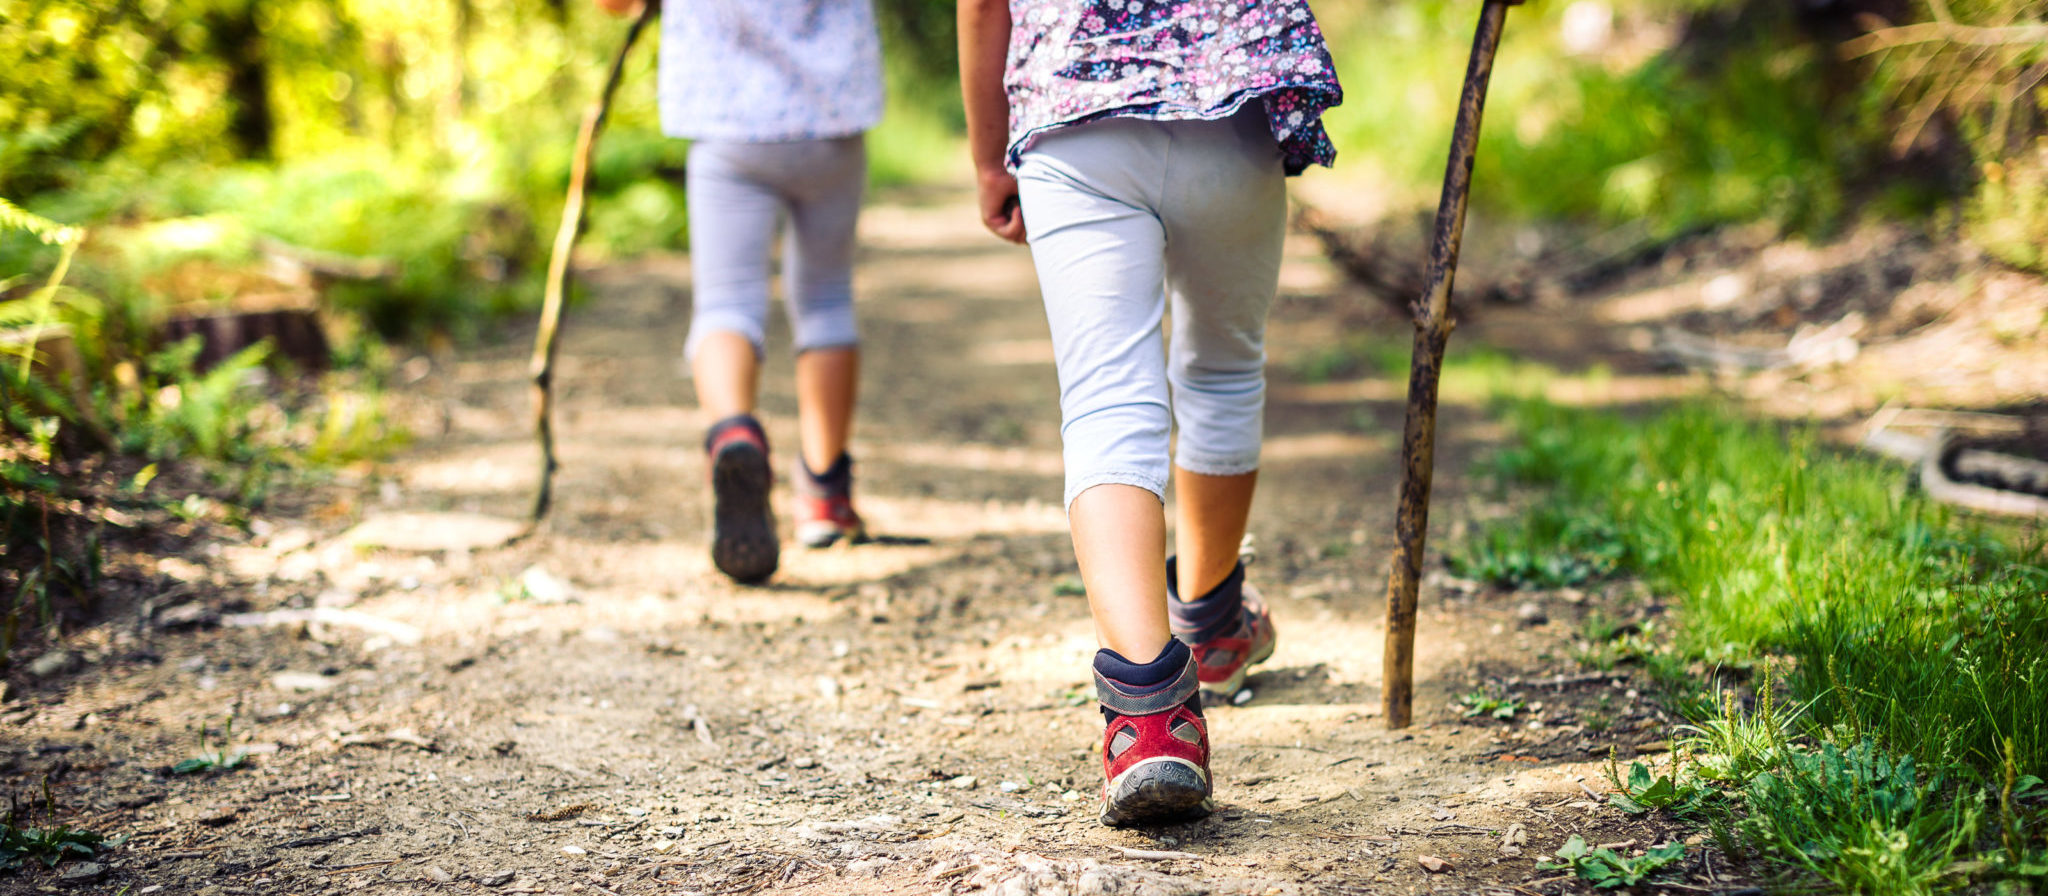 Bringing your little ones along hiking is a fantastic way to encourage healthy living, and there is no better place than in nature to exercise the imagination as well!